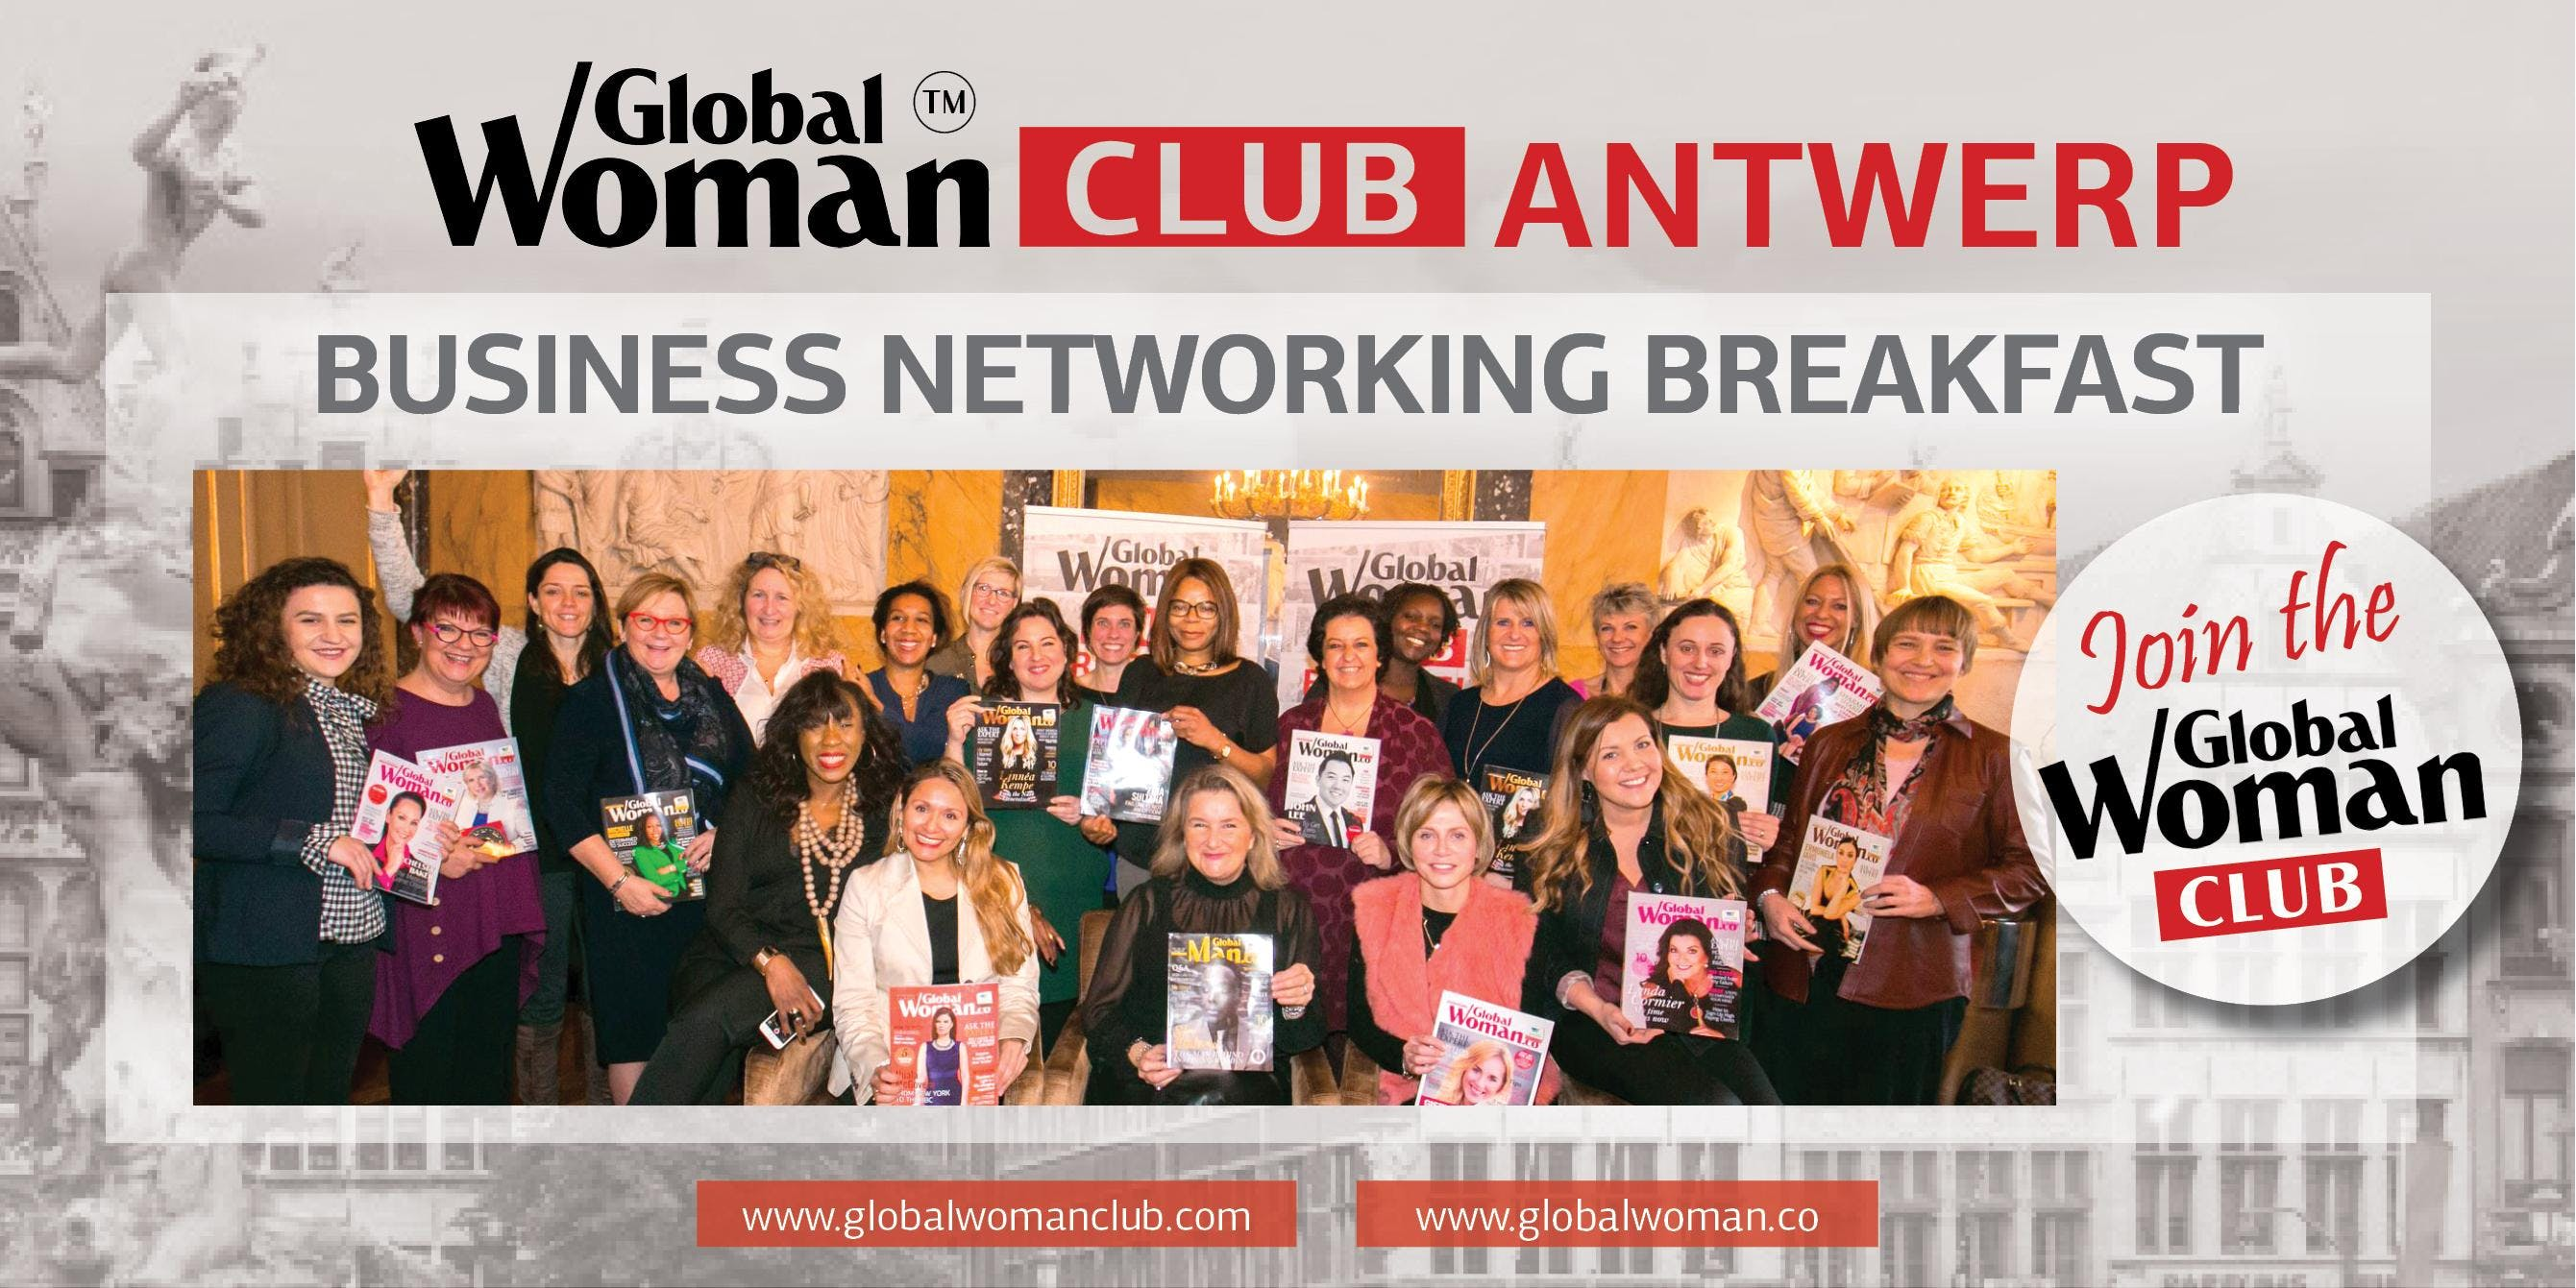 GLOBAL WOMAN CLUB ANTWERP BUSINESS BREAKFAST - JULY